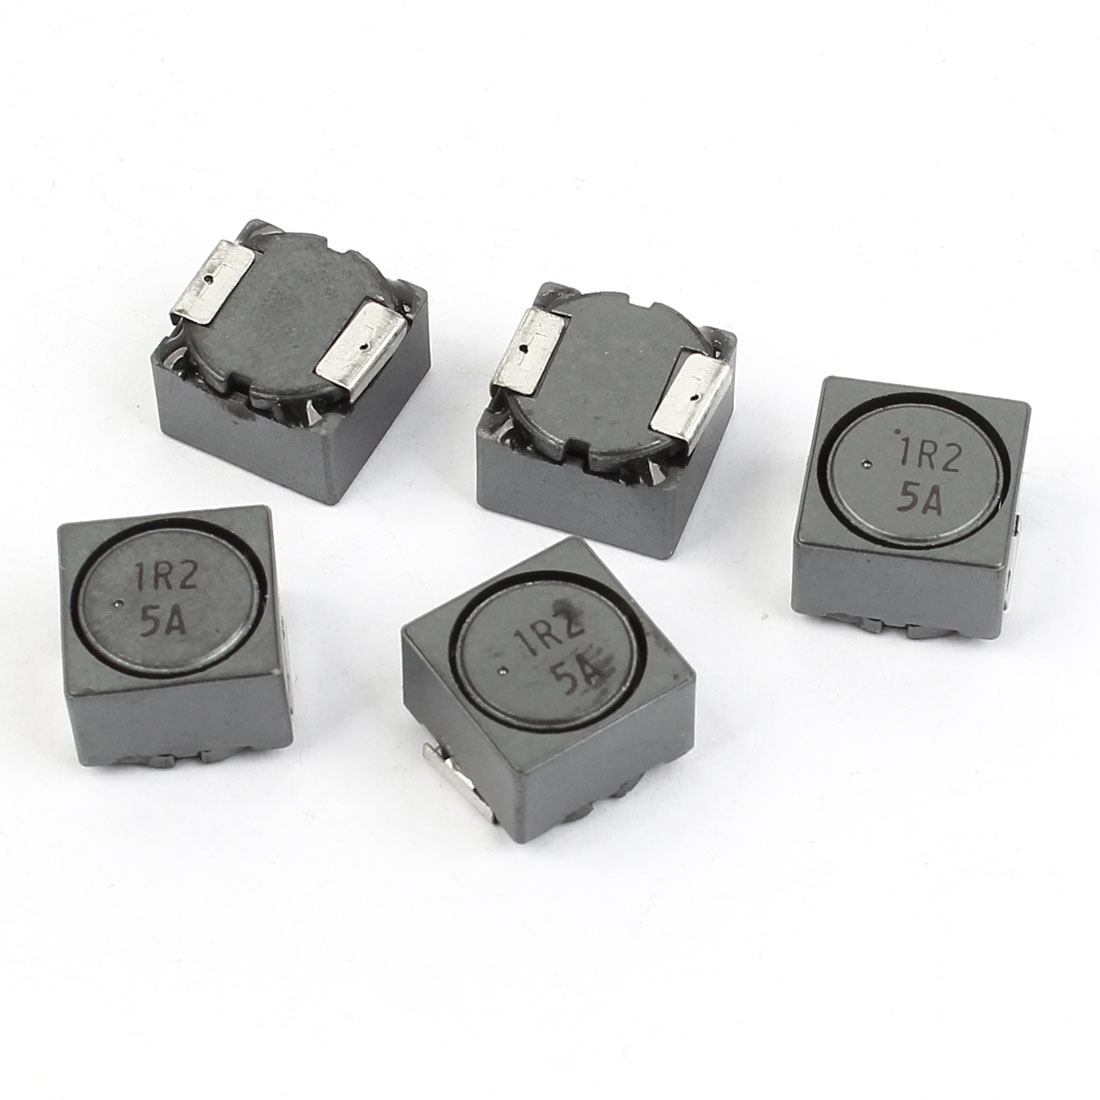 5 Pcs 1R2 1.2UH Inductance Surface Mount SMD SMT Power Inductors 10mmx10mmx6.8mm